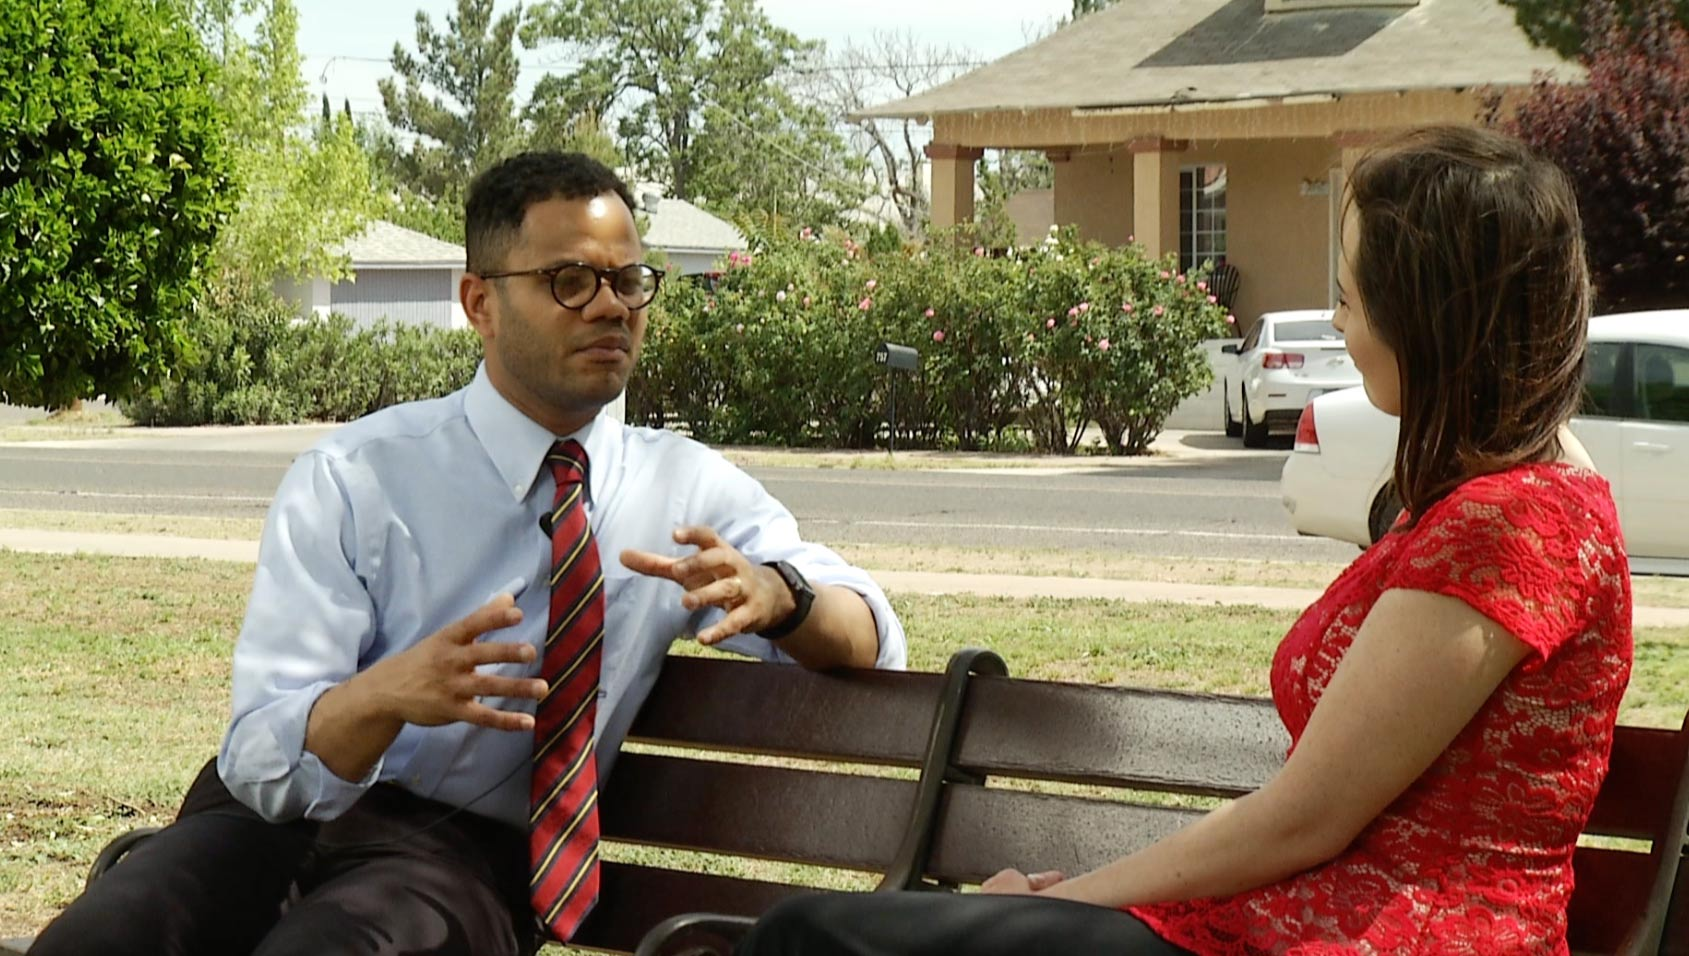 Robert Uribe, mayor of Douglas, Ariz., speaks with Lorraine Rivera, April 2017.